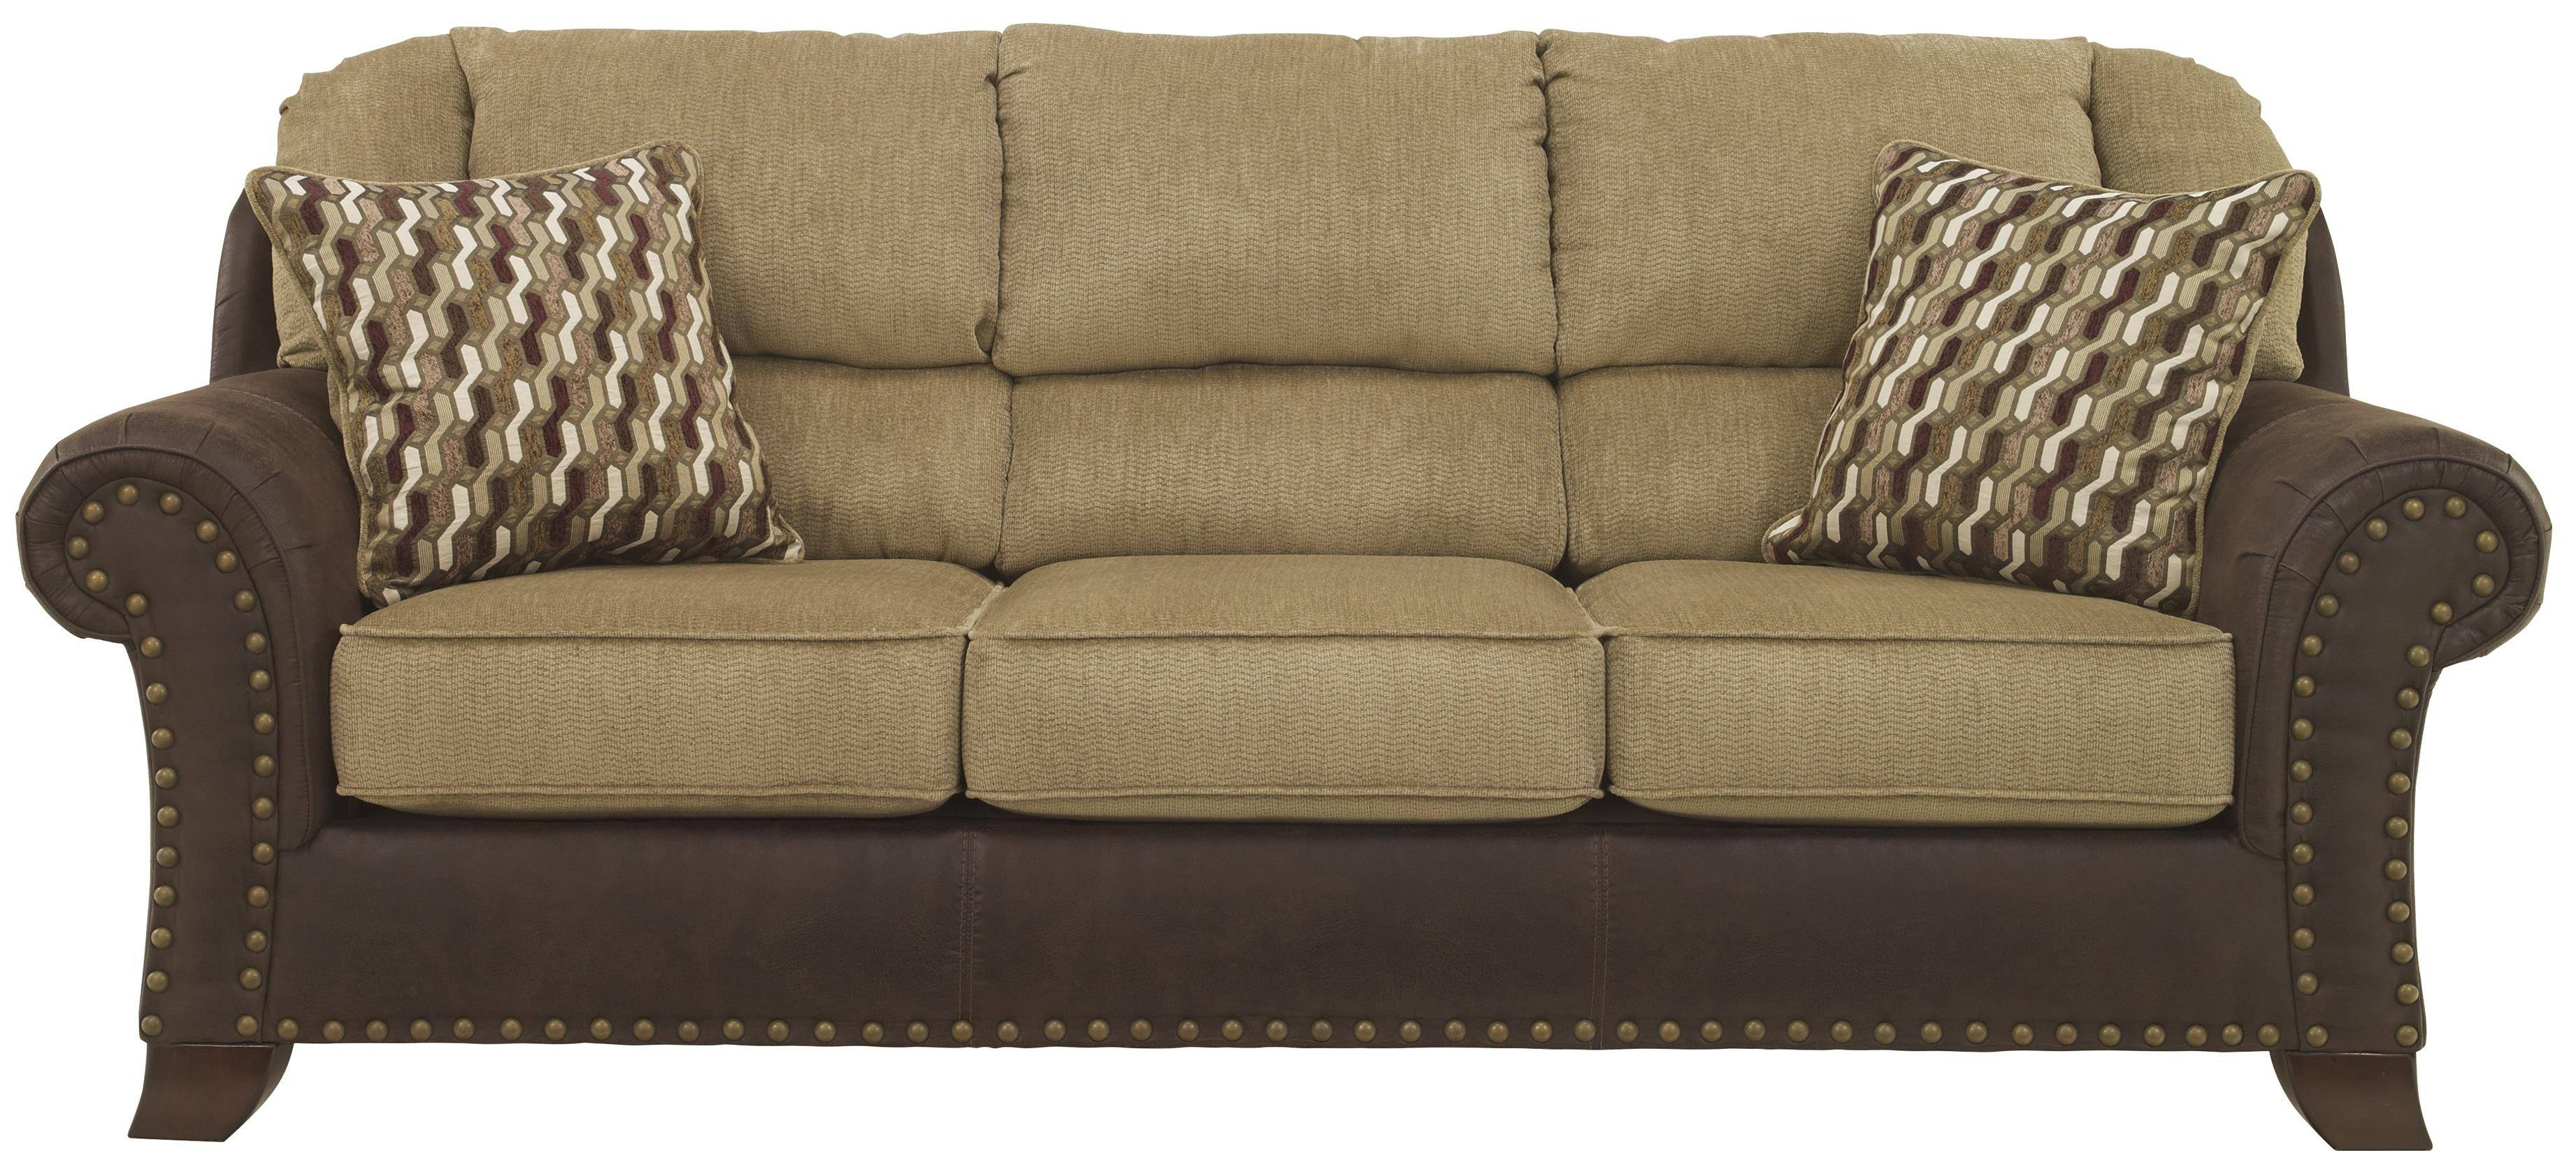 Benchcraft Vandive Two-Tone Sofa With Chenille Fabric/faux Leather throughout Two Tone Sofas (Image 4 of 30)